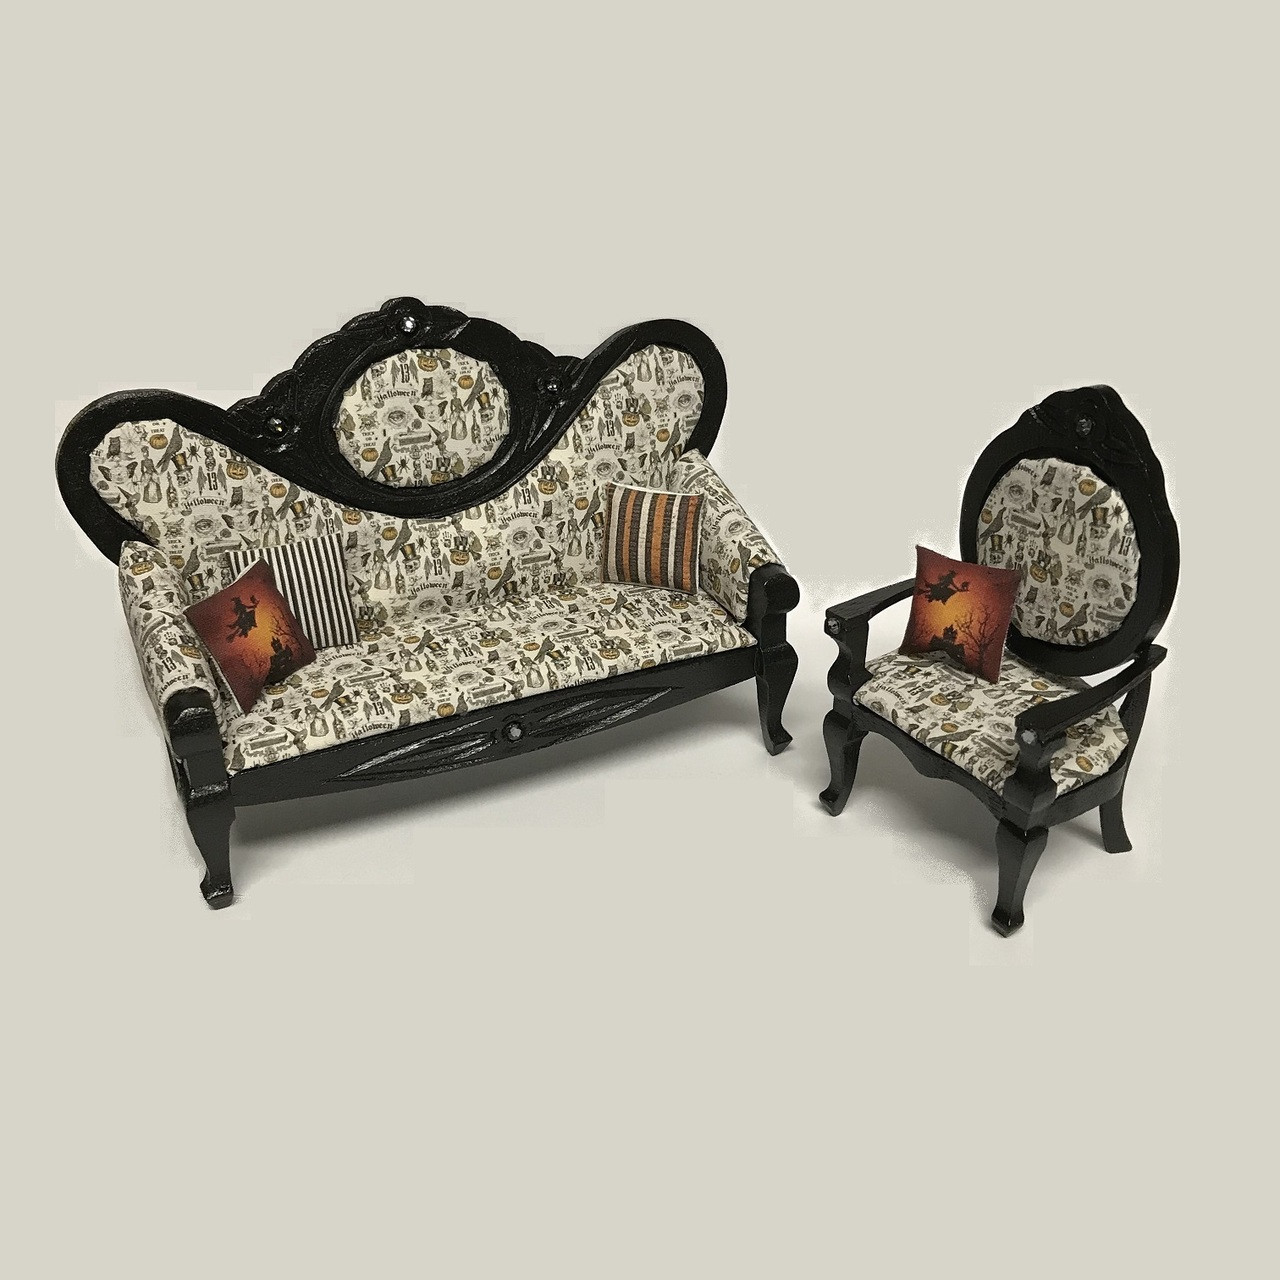 Marvelous Halloween Sofa And Arm Chair Caraccident5 Cool Chair Designs And Ideas Caraccident5Info